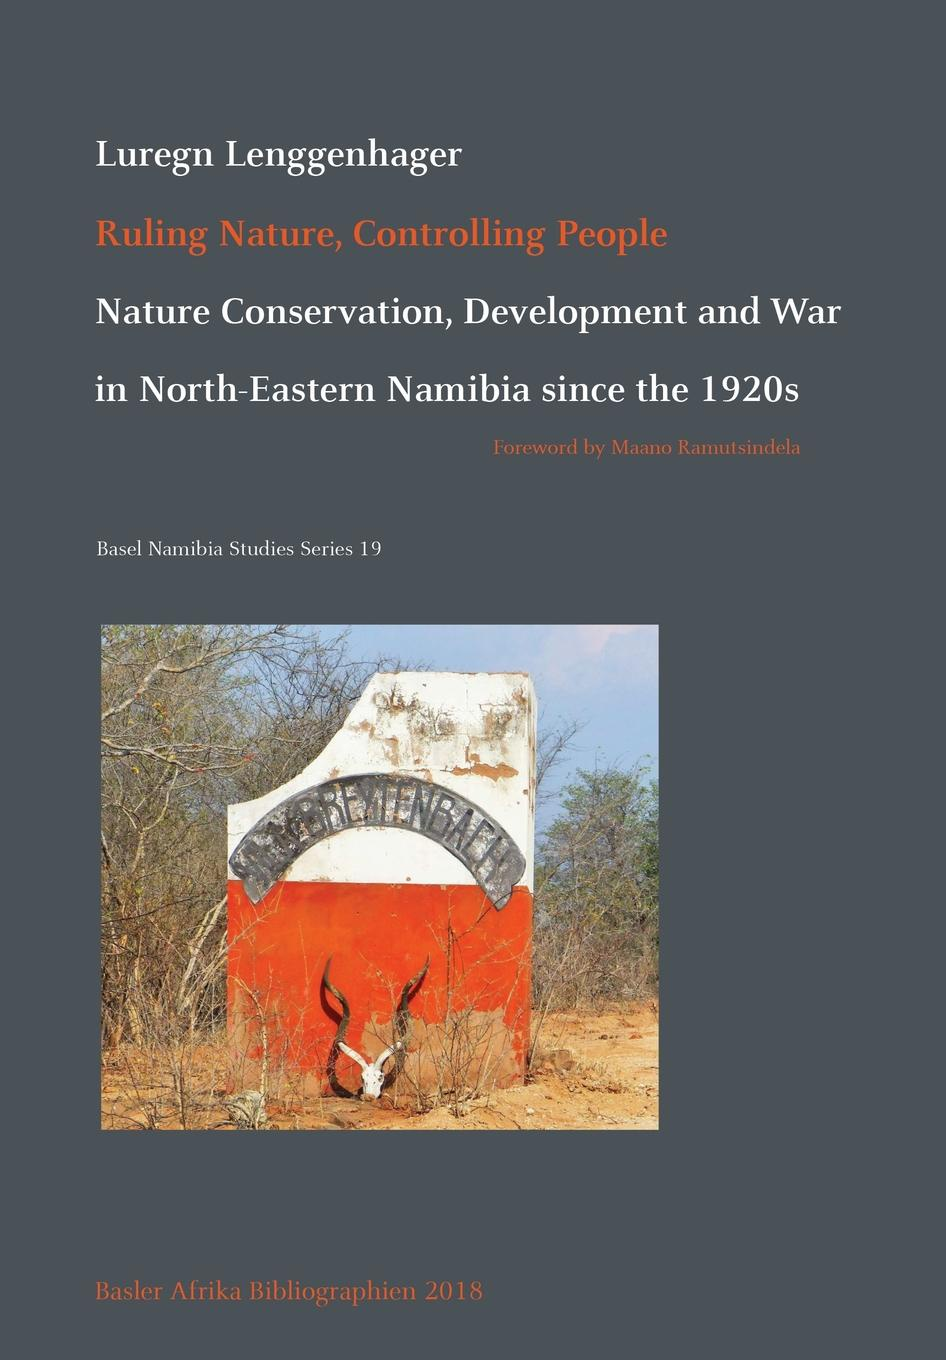 Luregn Lenggenhager Ruling Nature, Controlling People. Nature Conservation, Development and War in North-Eastern Namibia since the 1920s clayton susan conservation psychology understanding and promoting human care for nature